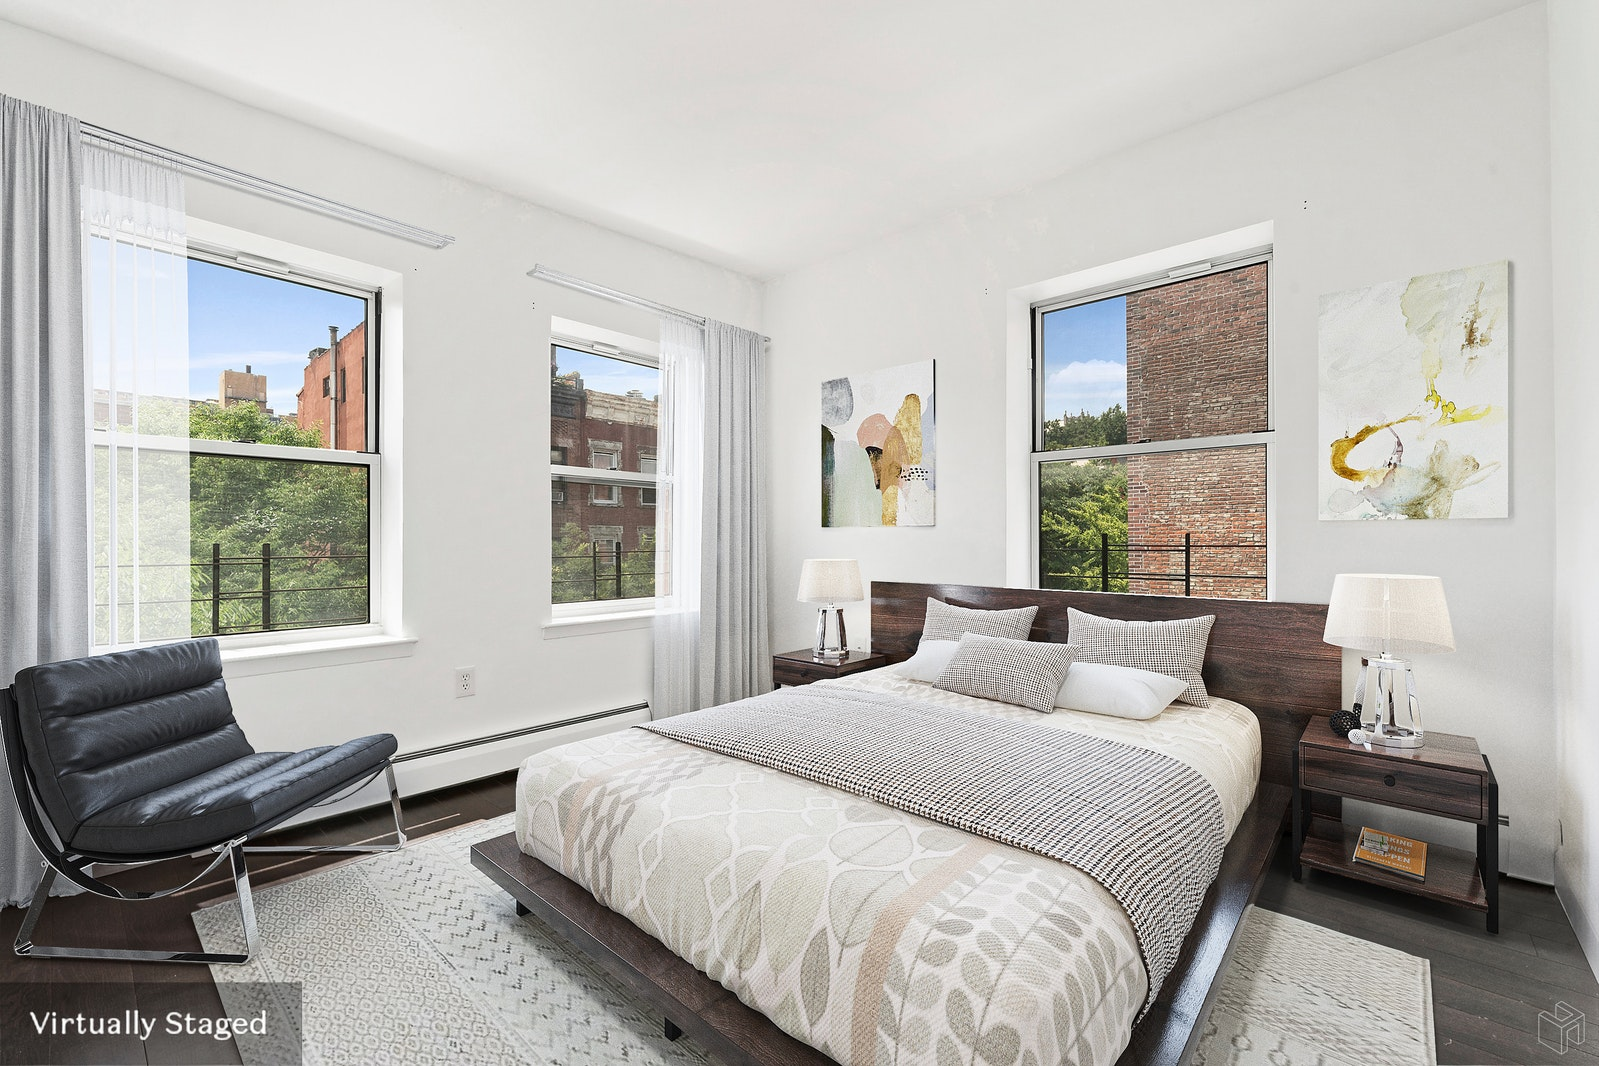 H-U-G-E 3 Br W/ Ultra Low CC'S & Taxes, Upper Manhattan, NYC, 10030, $1,249,000, Property For Sale, Halstead Real Estate, Photo 6